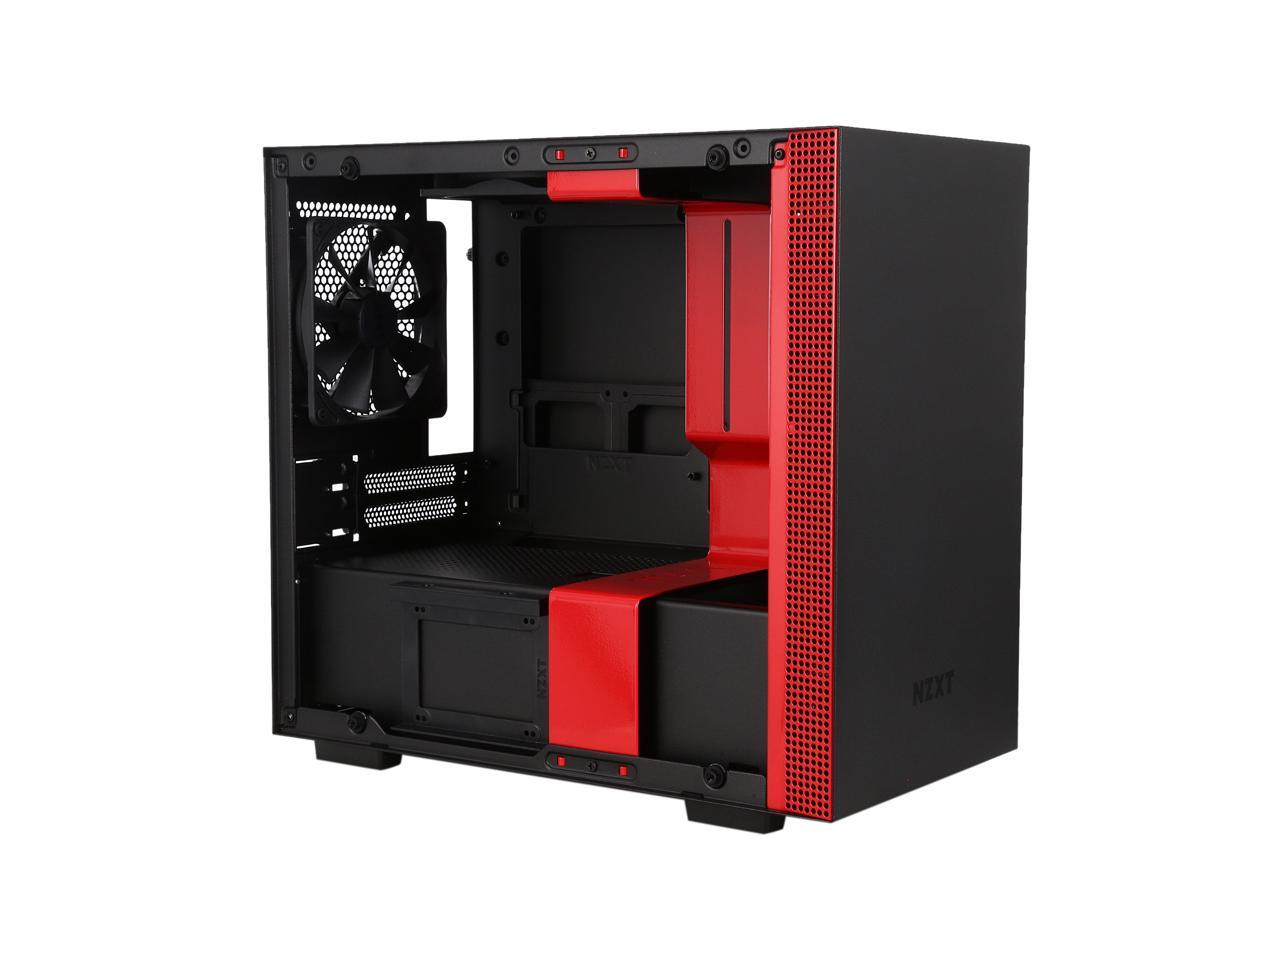 Tempered Glass Panel NZXT H200 Water Cooling Ready Black//Red Enhanced Cable Management System 2018 Model Mini-ITX PC Gaming Case